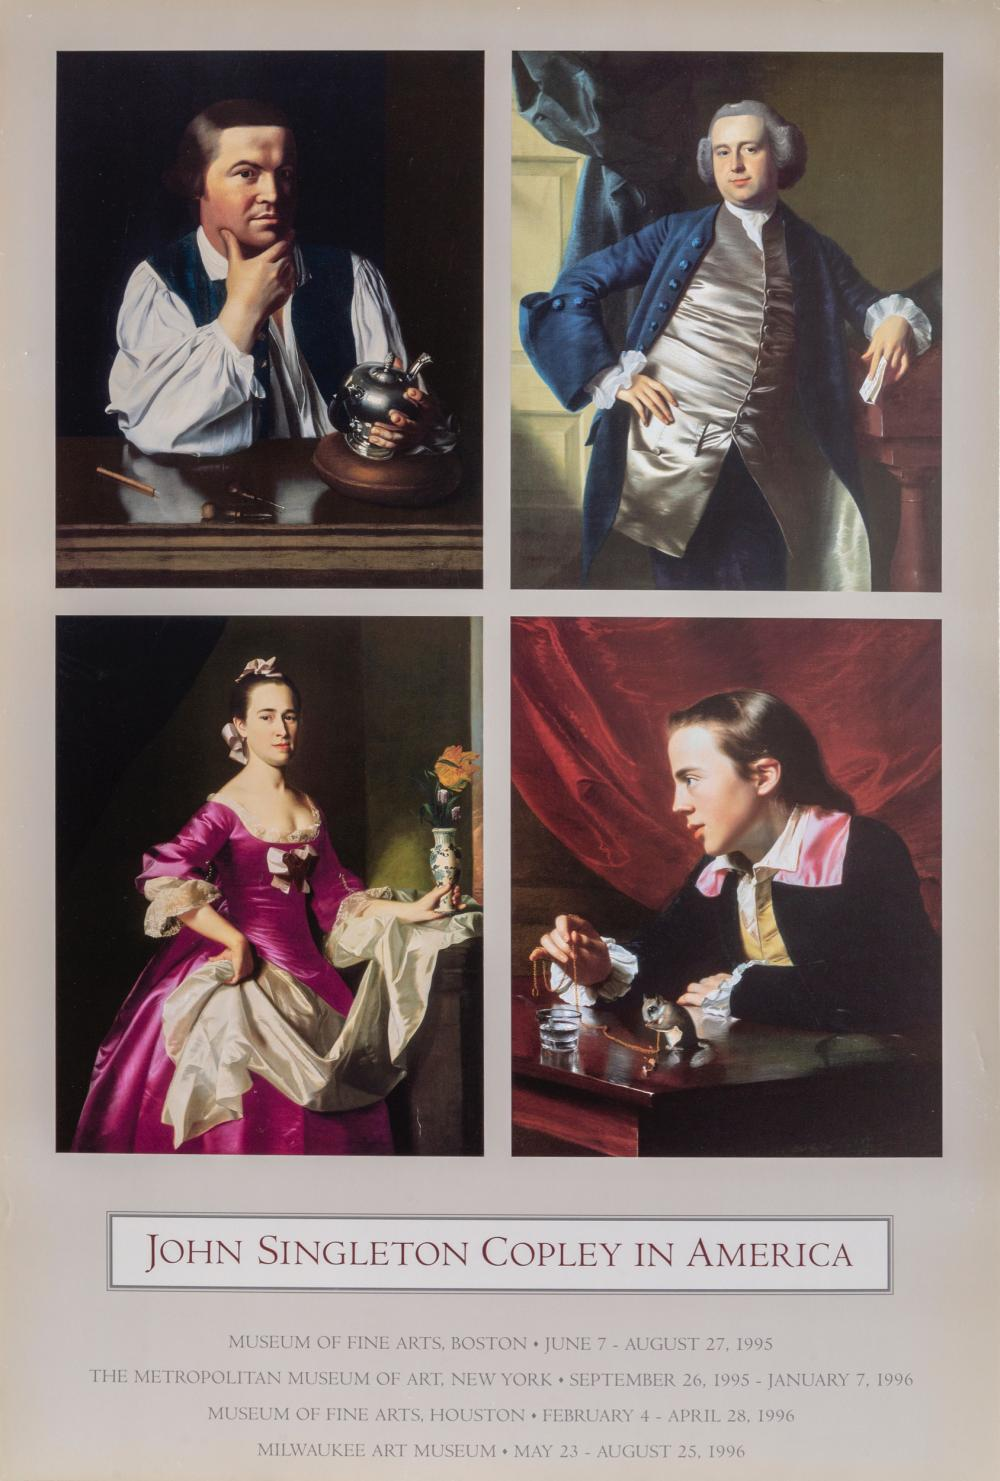 Lot 544: William Copley, Revere and Three Portraits, Poster on foamcore